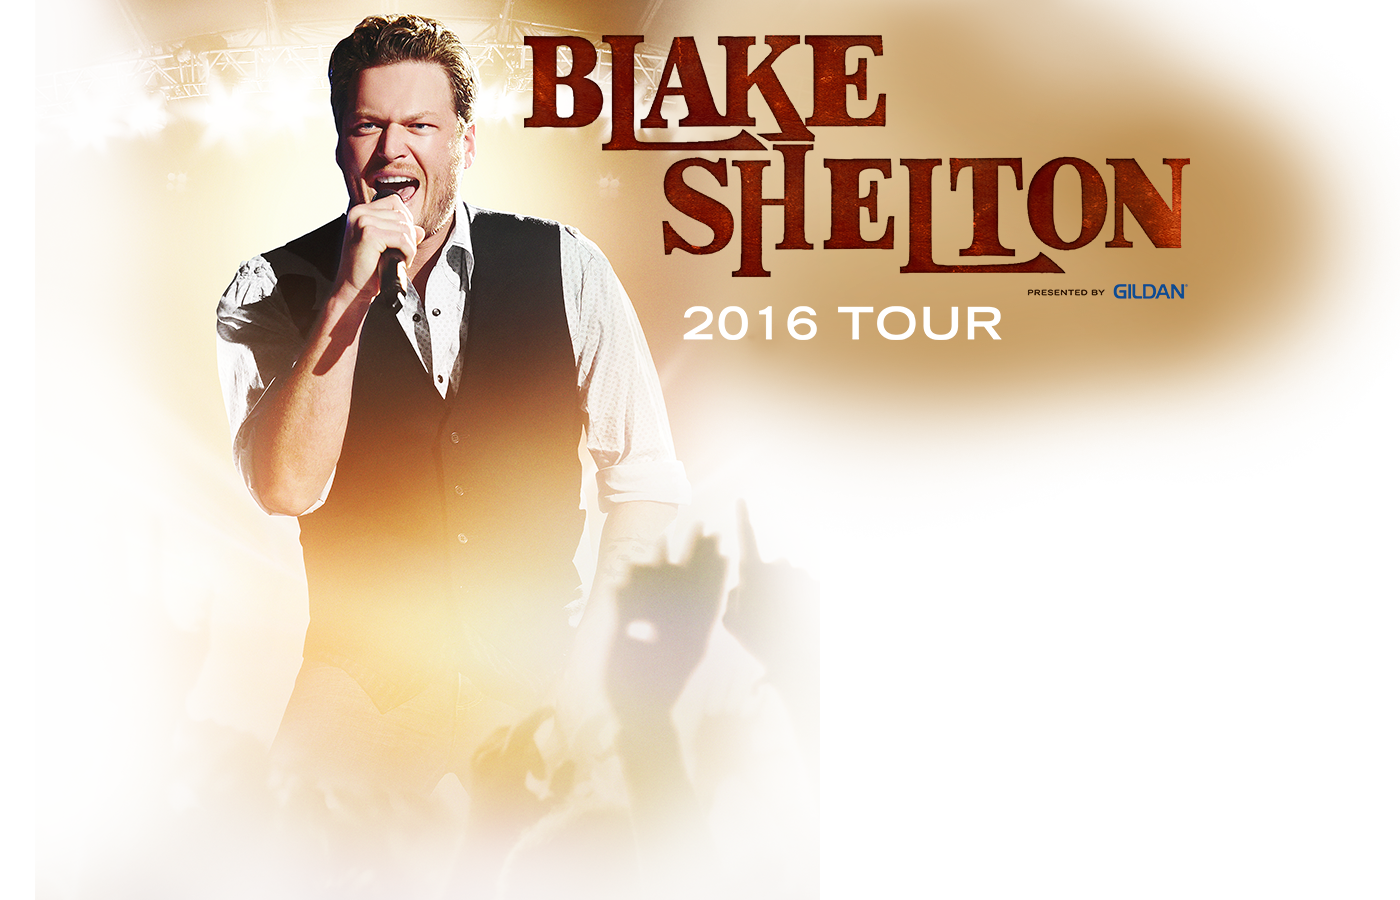 Blake shelton presented by gildan tour cid entertainment blake shelton presented by gildan tour kristyandbryce Image collections